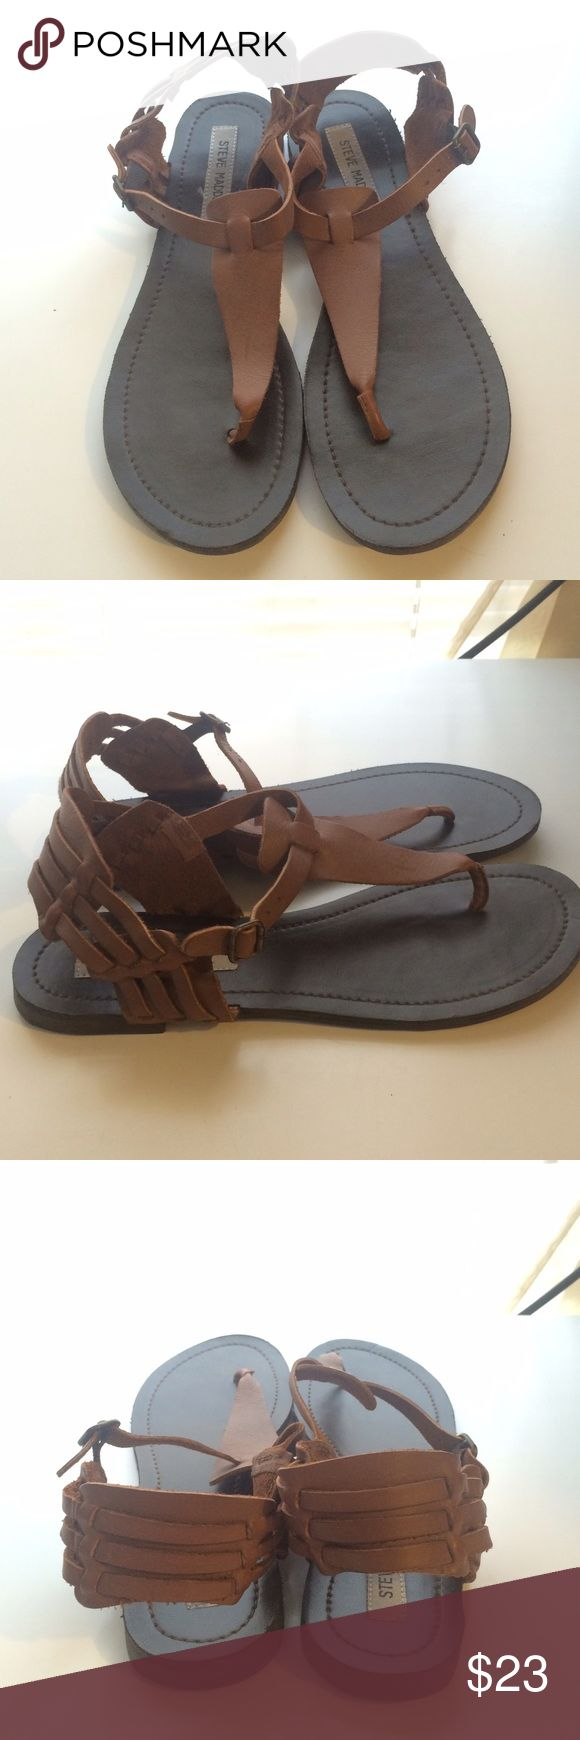 🆕 Steve Madden Listing! Brown Leather Sandals Awesome brown leather Steve Madden sandals size 8.5 with a fun woven look. Very comfortable and versatile. Great condition, worn a handful and stored, very light wear (see pics). Sorry, no trades. Steve Madden Shoes Sandals